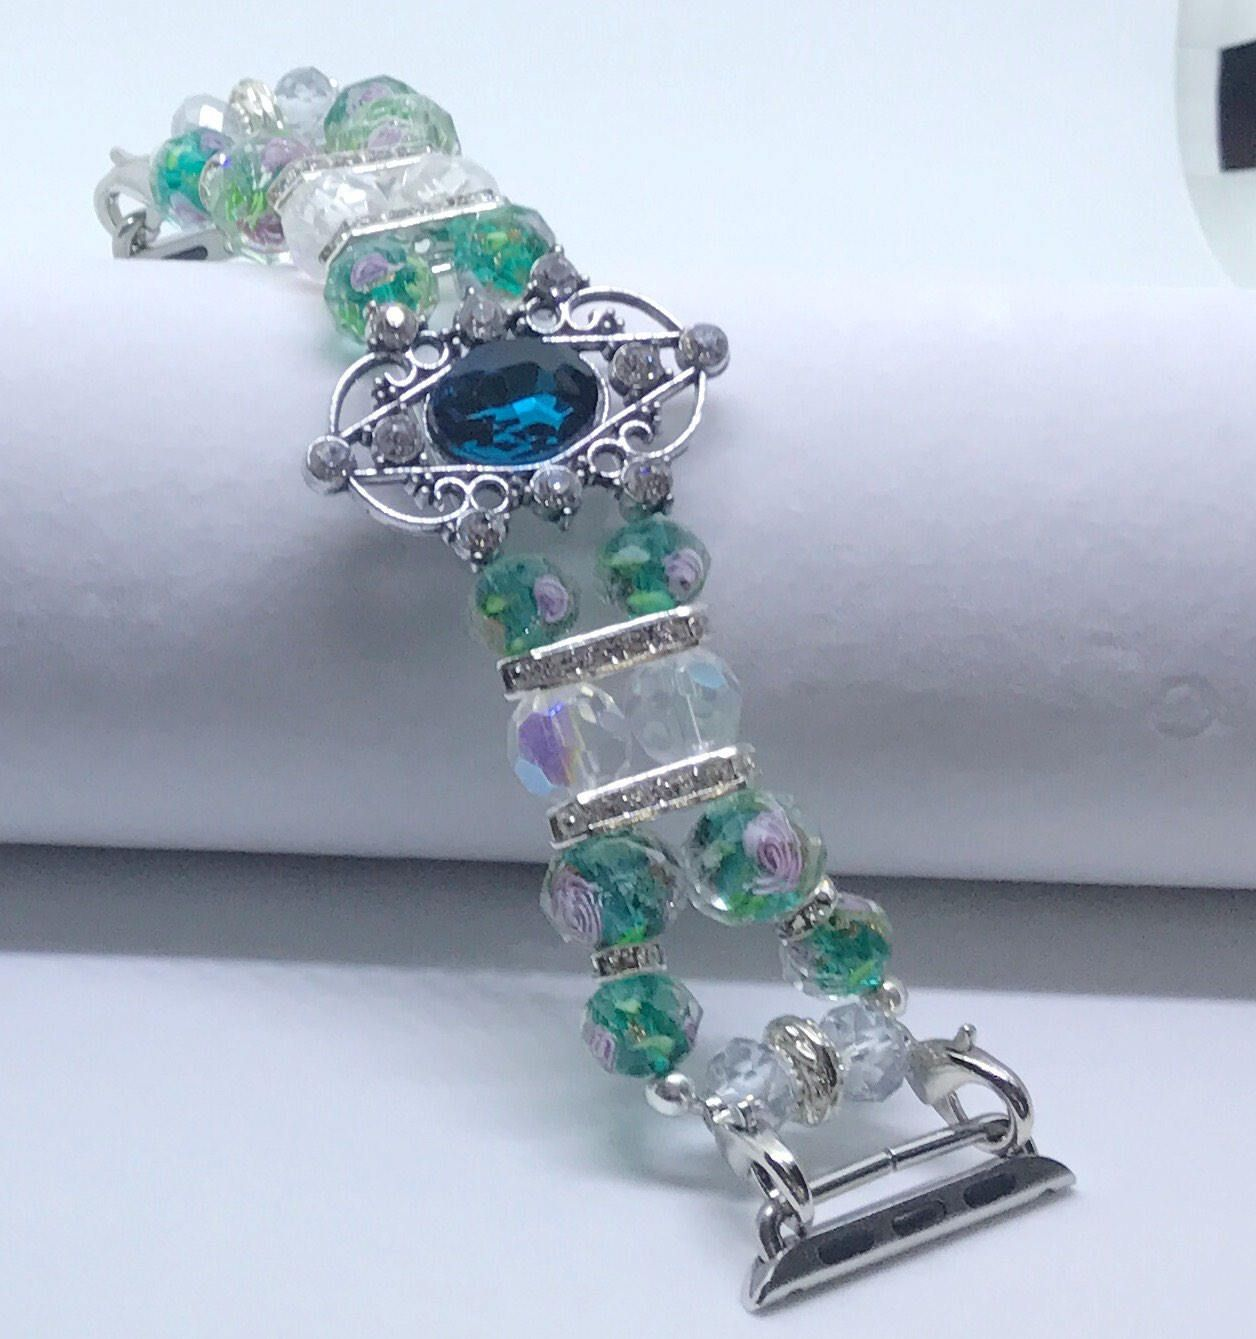 """Emerald Green w/Pink Highlights Beaded Bracelet Watch Band For 38mm or 42mm Apple Watches (w/ Silver Metal) for Wrist Sizes 6 1/2"""" - 6 3/4""""  Handmade Women's Beaded Bracelet Watch Bands Compatible for Apple Smartwatch (38mm & 42mm) - made in the USA by www.elegantlifeboutique.com  Please visit my website, Etsy shop or my new eBay store @ElegantLifeBoutique"""